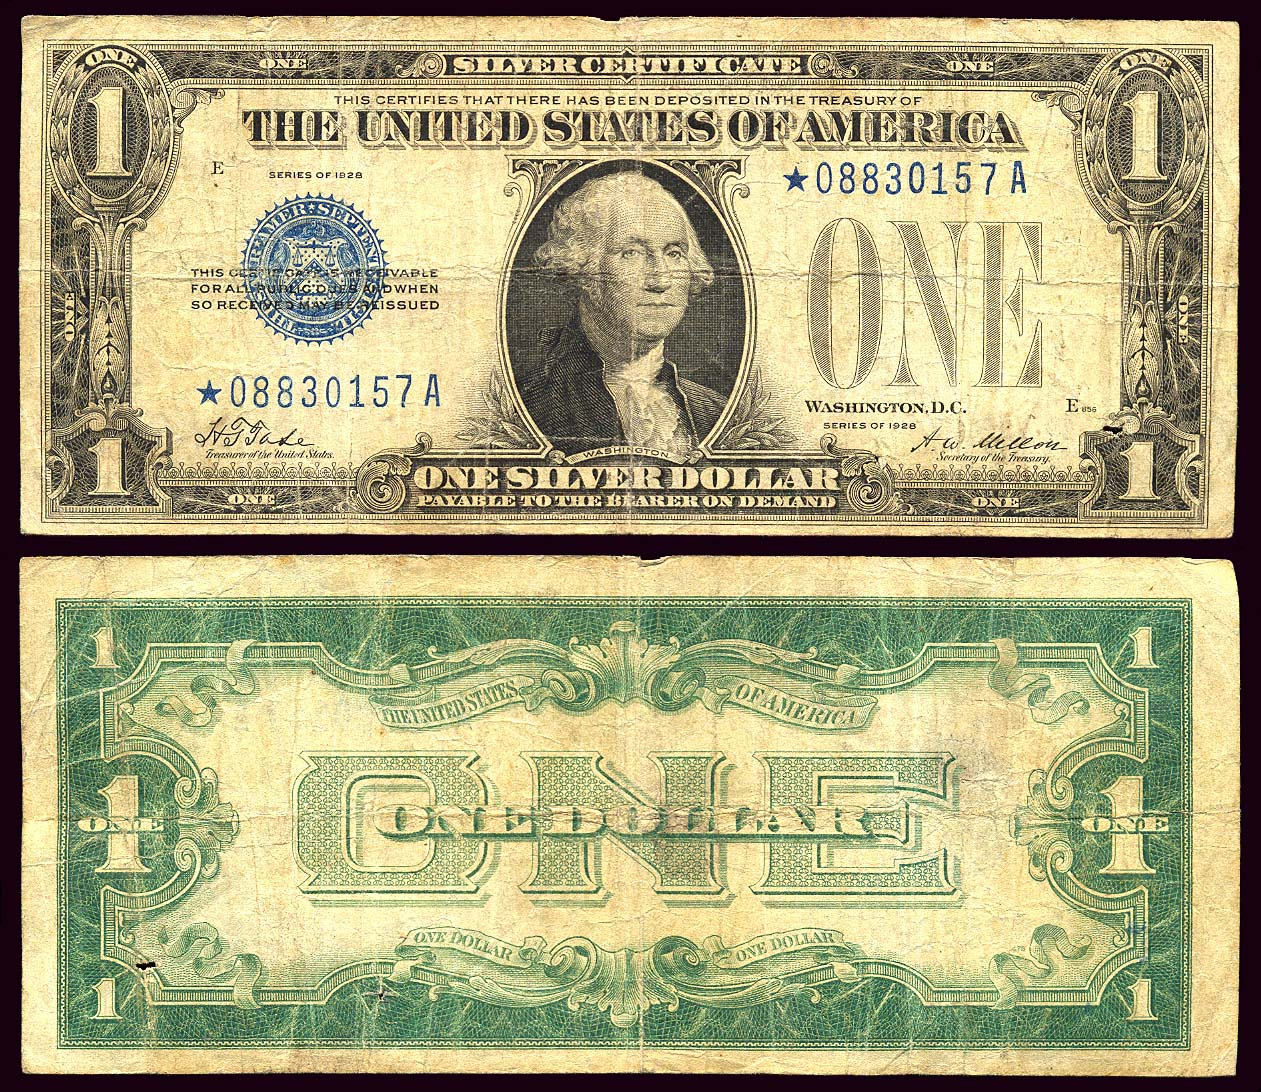 paper currency values The cost of the civil war was huge in dollars and lives to finance the war both north and south turned to paper currency issues the union issued $1 and $2 currency notes beginning in 1862 a second issue of 1862-63 added $5, $10, $20, $50 and $100 notes.